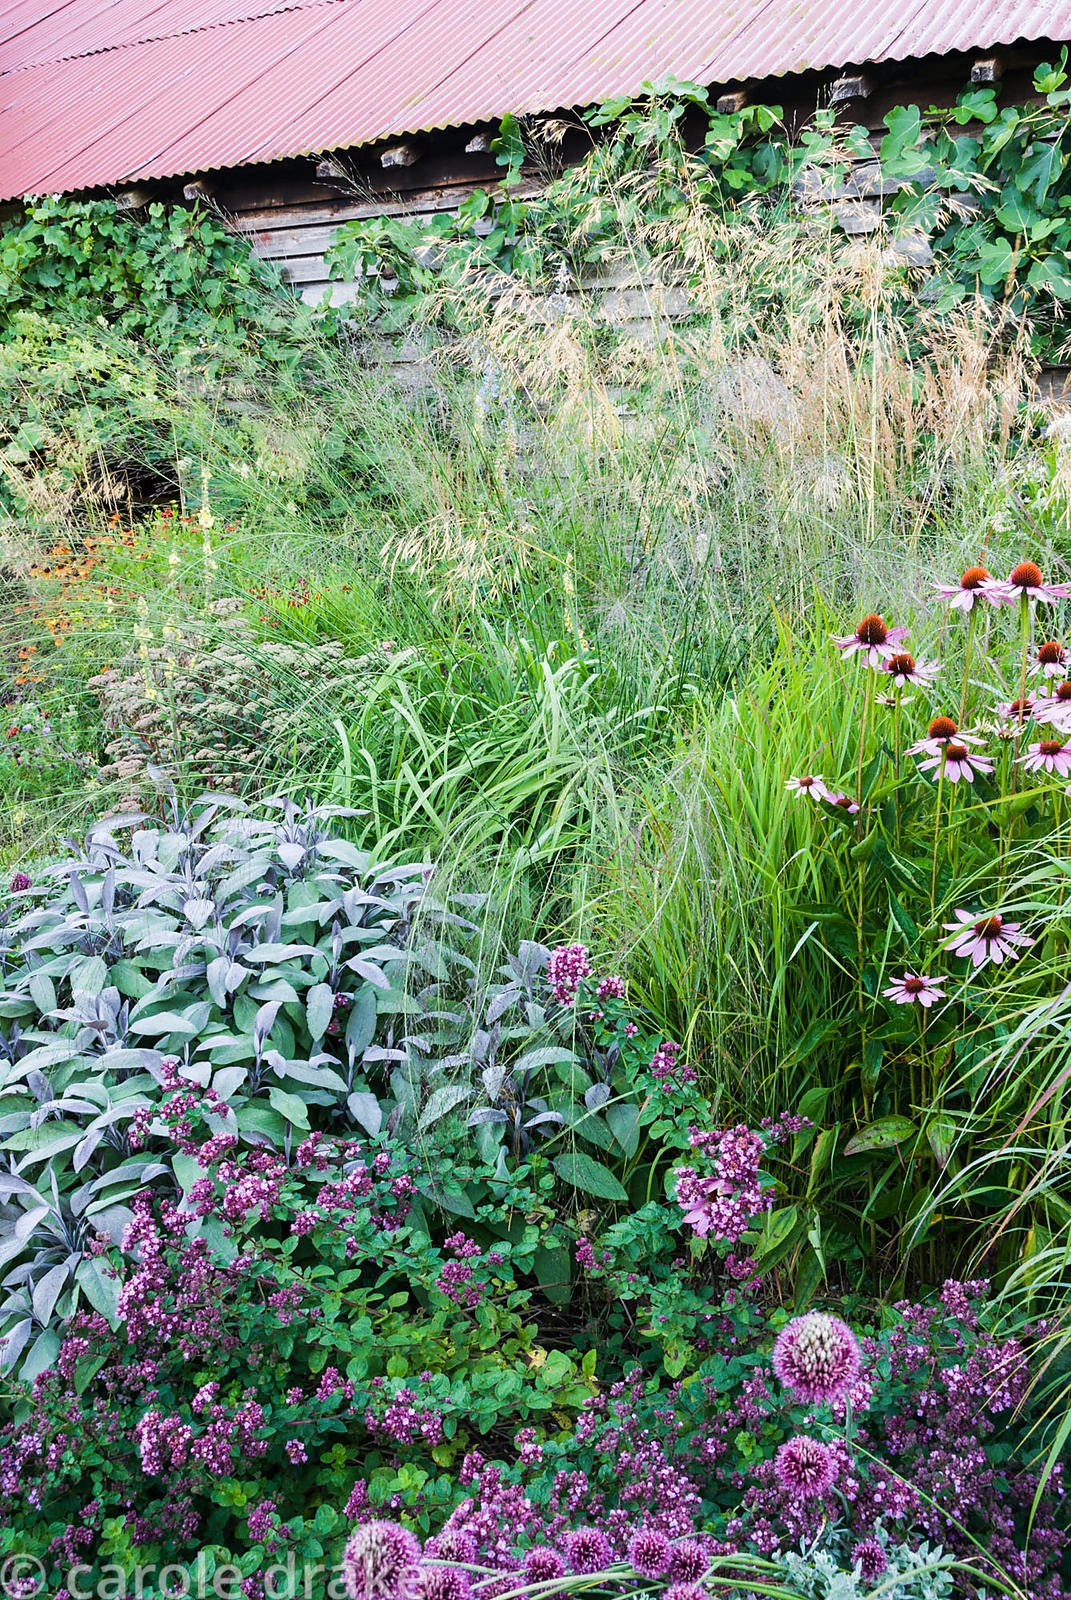 Border in front of tin-roofed barn includes Echinacea purpurea, clumps of Calamgrostis brachytricha, Stipa gigantea and Molin...